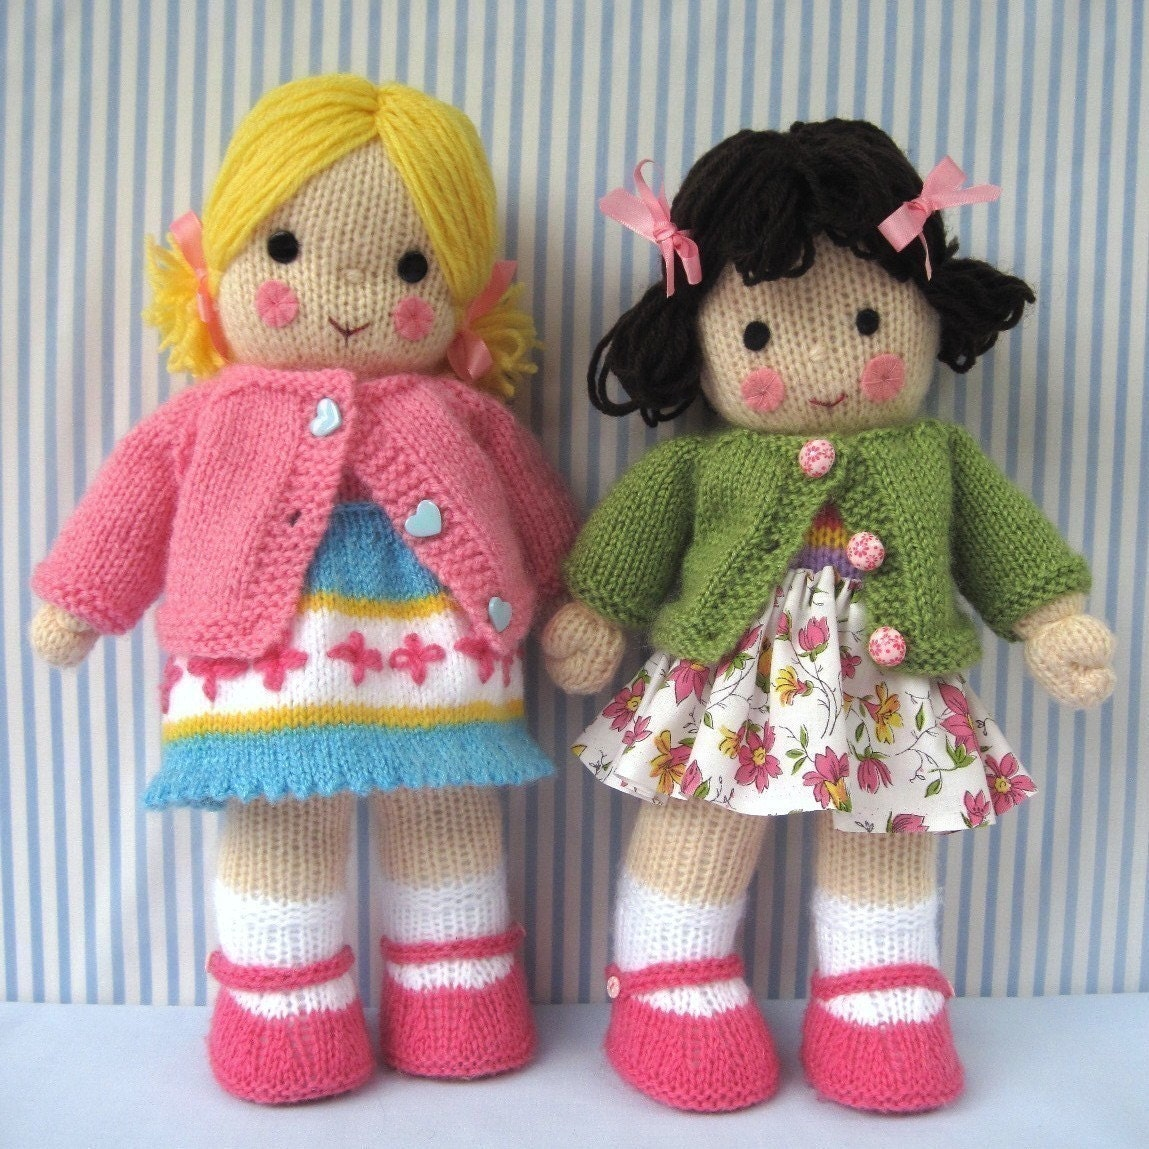 Free Toy Knitting Patterns Only : POLLY and KATE knitted toy dolls PDF email knitting